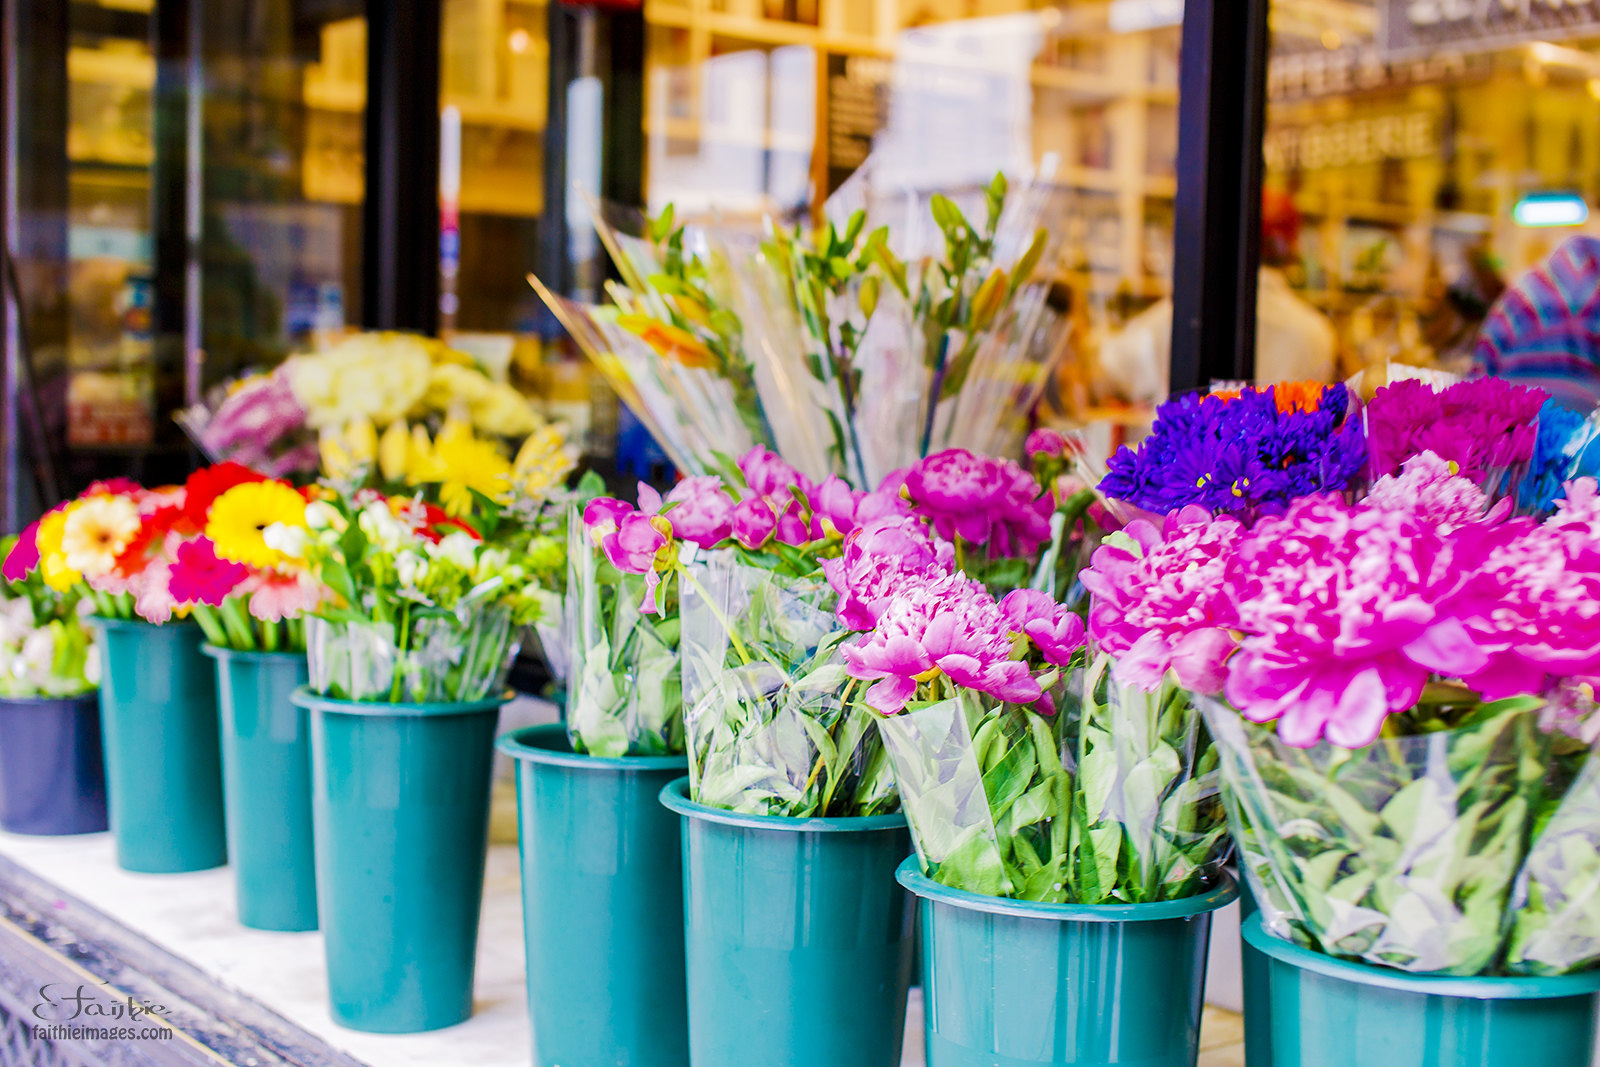 Manhattan flower shop displays with pink carnations